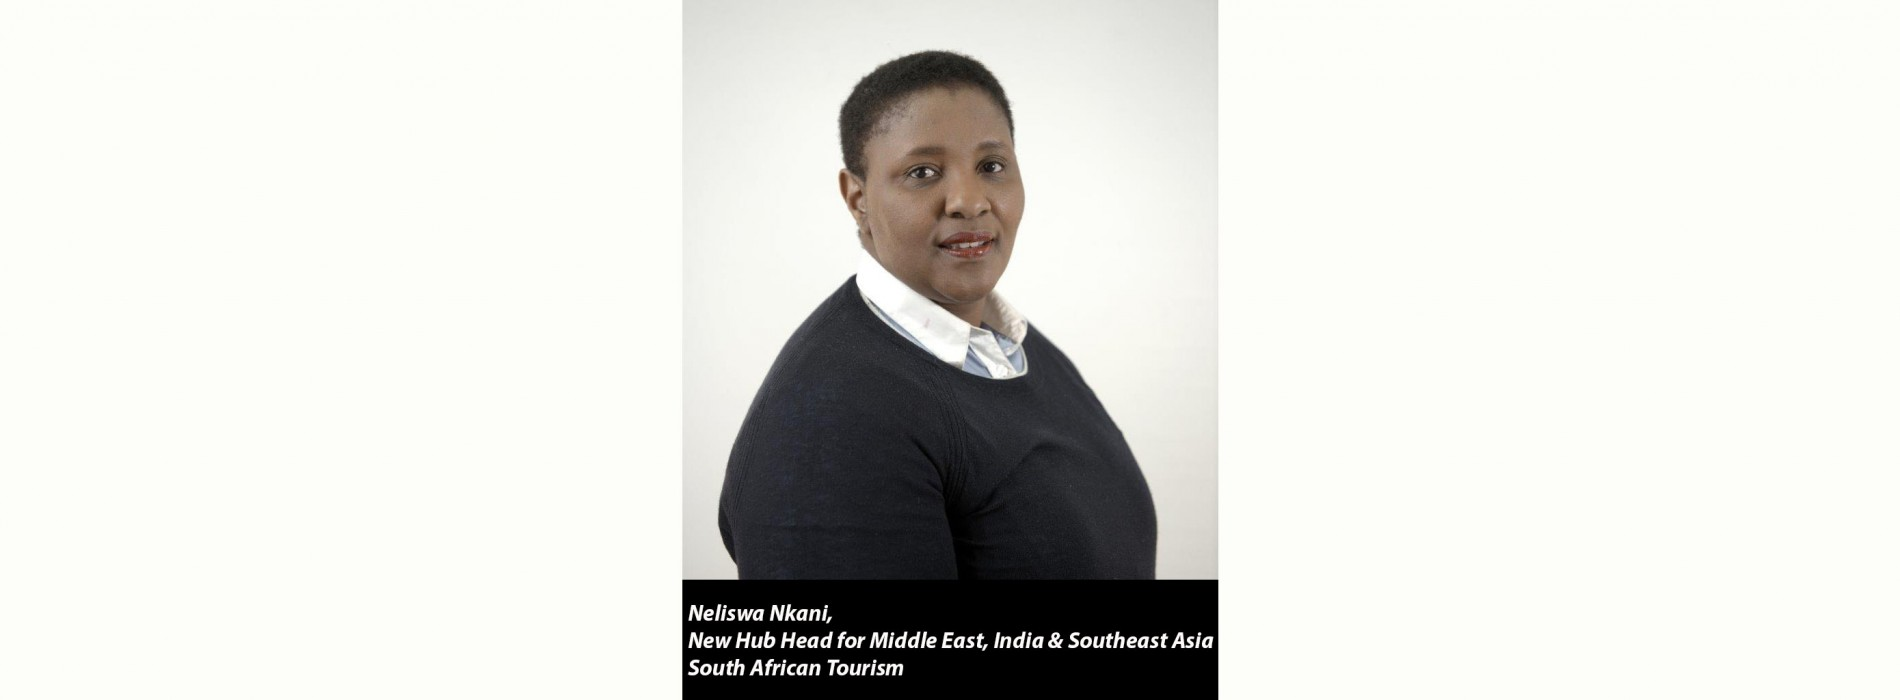 South African Tourism announces appointment of new Hub Head